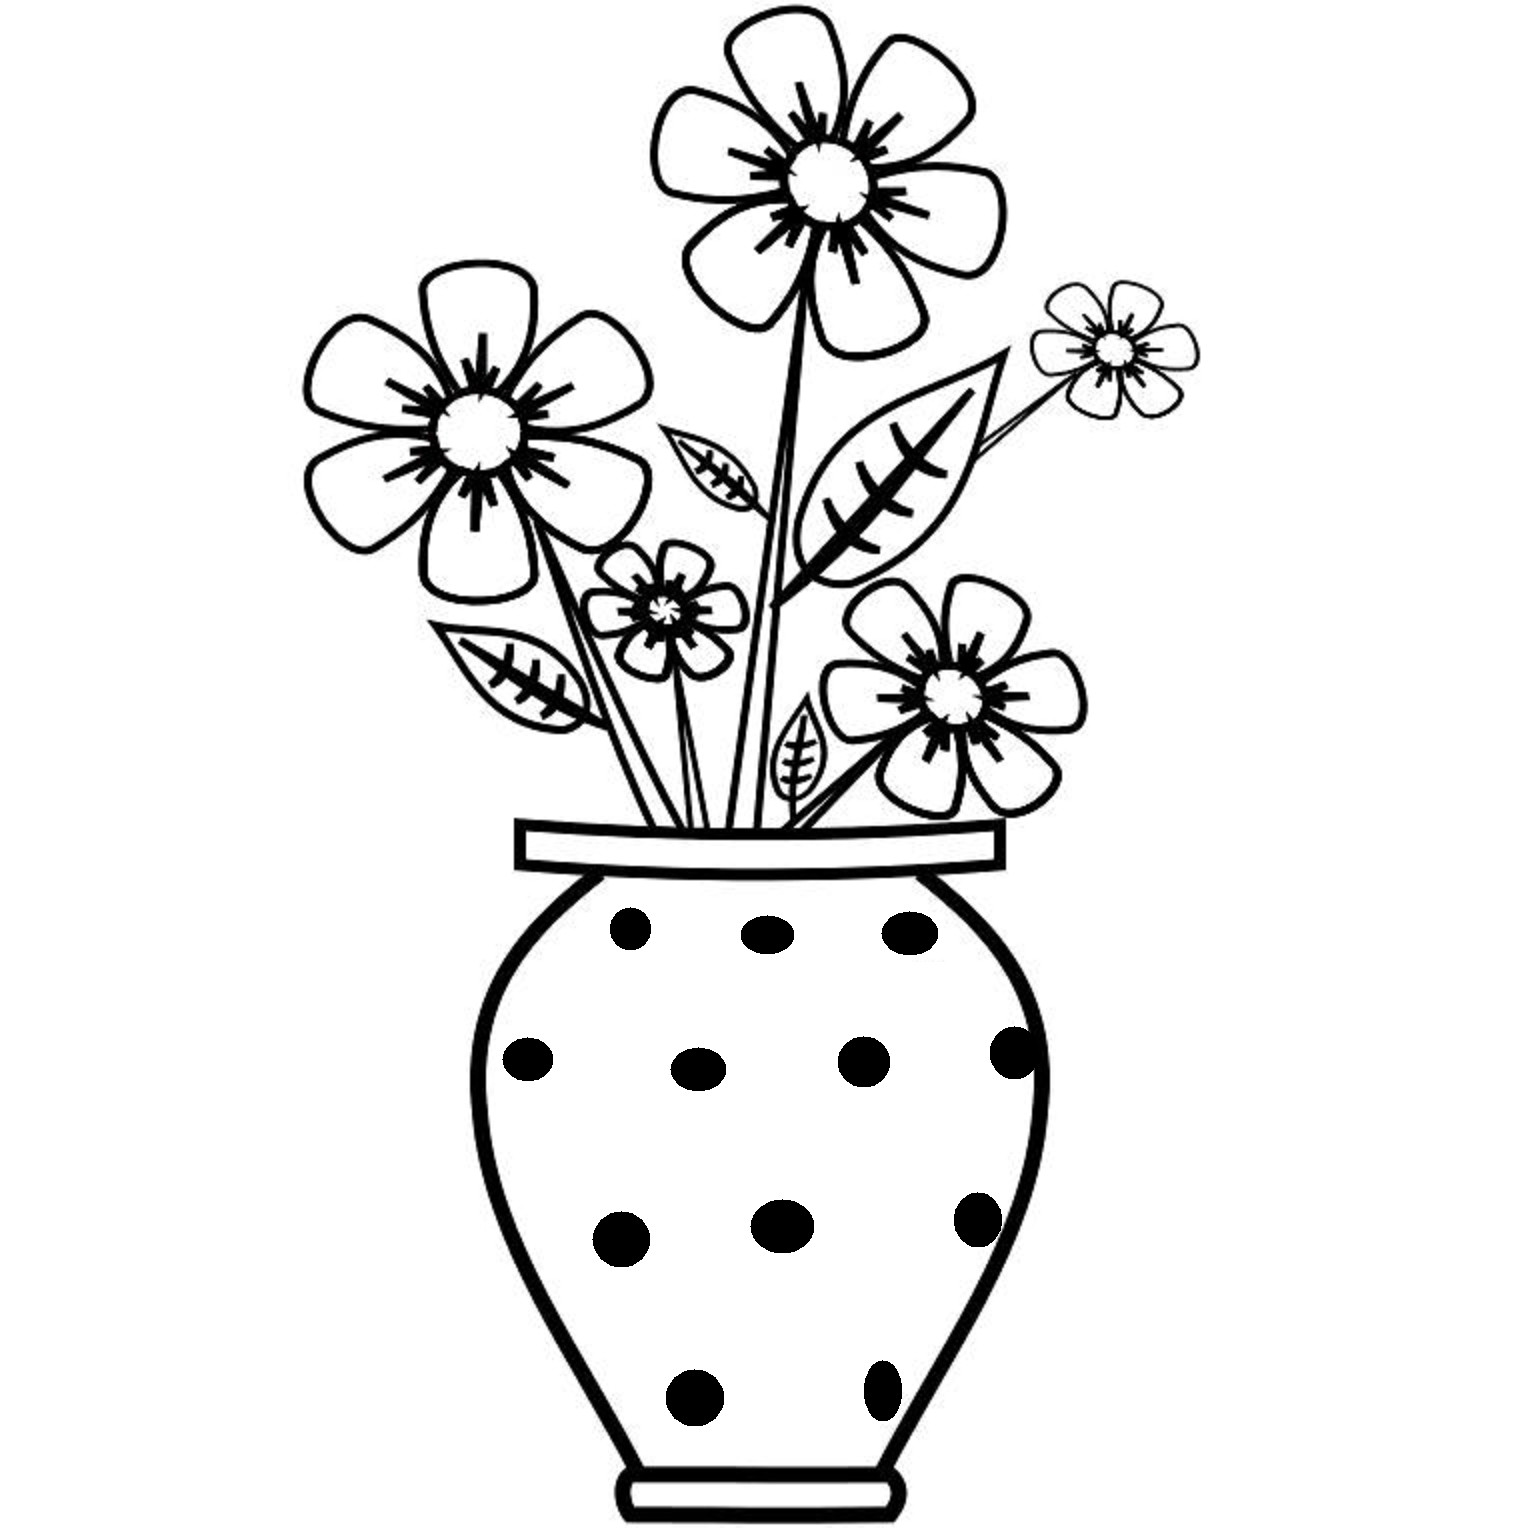 1532x1528 Flower Vase Drawing Of Flowers Inrt Libraryh Vases Draw